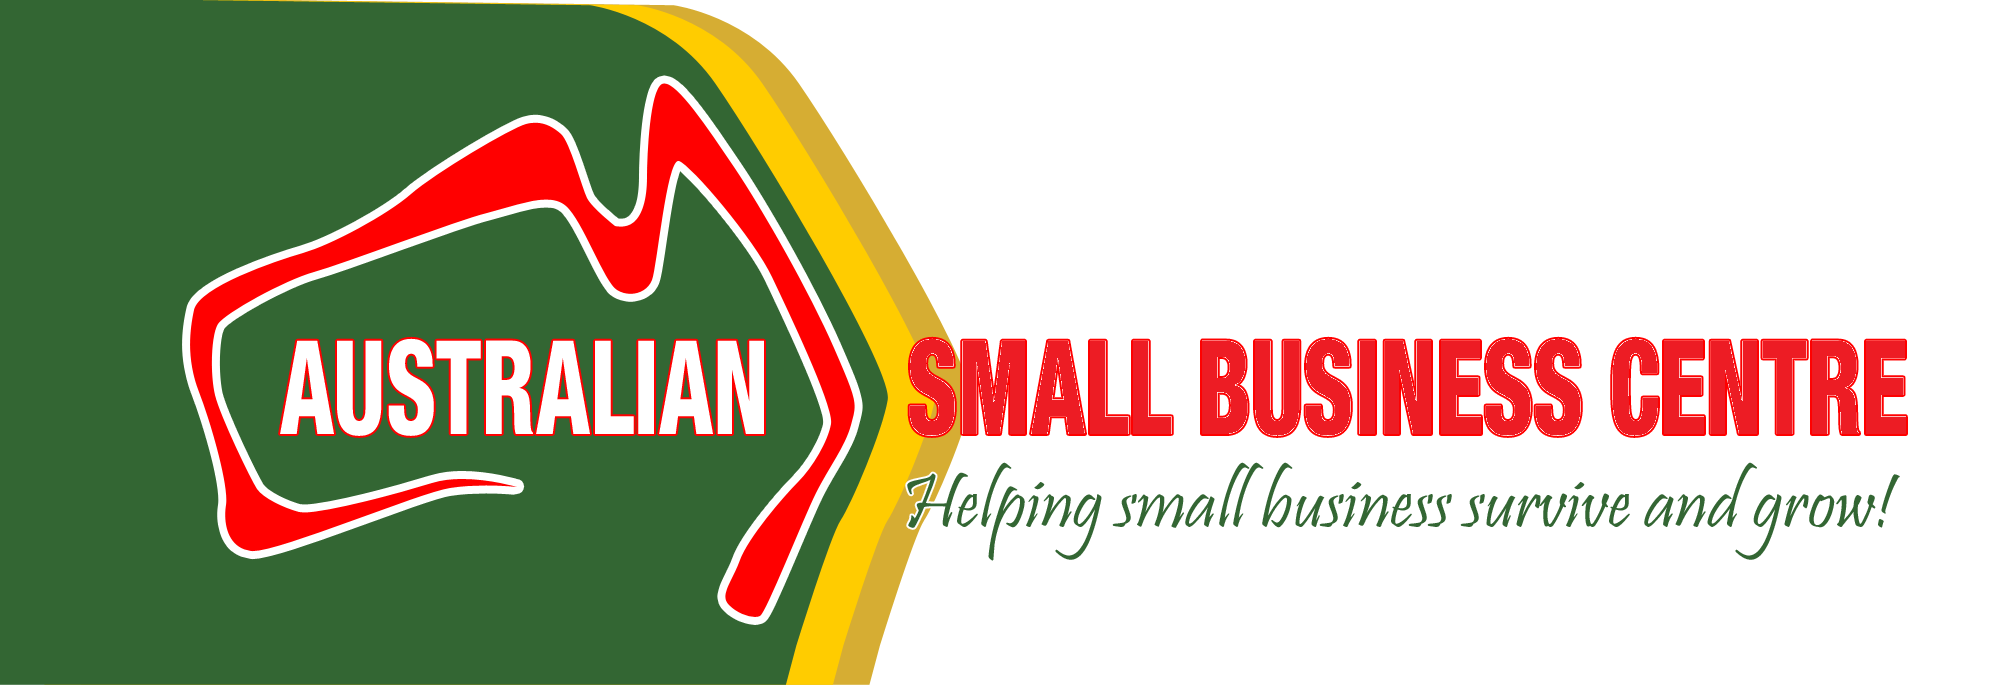 123 Group Pty Ltd - Small Business Centre